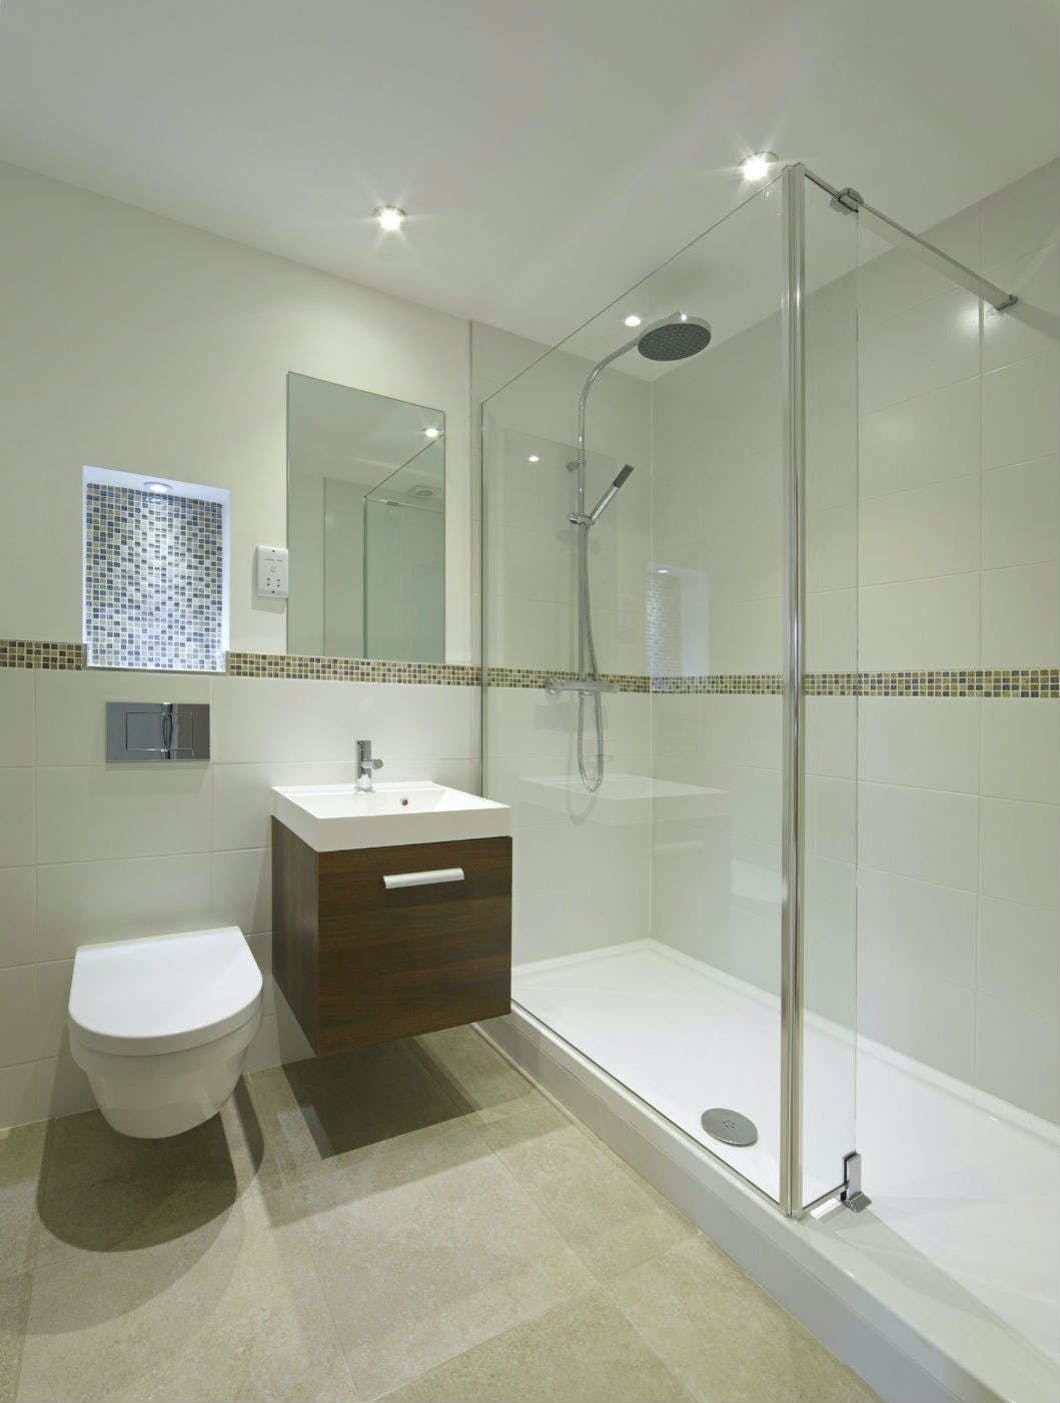 Walk-In shower enclosures are usually the shower solution of choice when there is ample space and showering is preferable over bathing; often a result of a busy, hectic lifestyle.